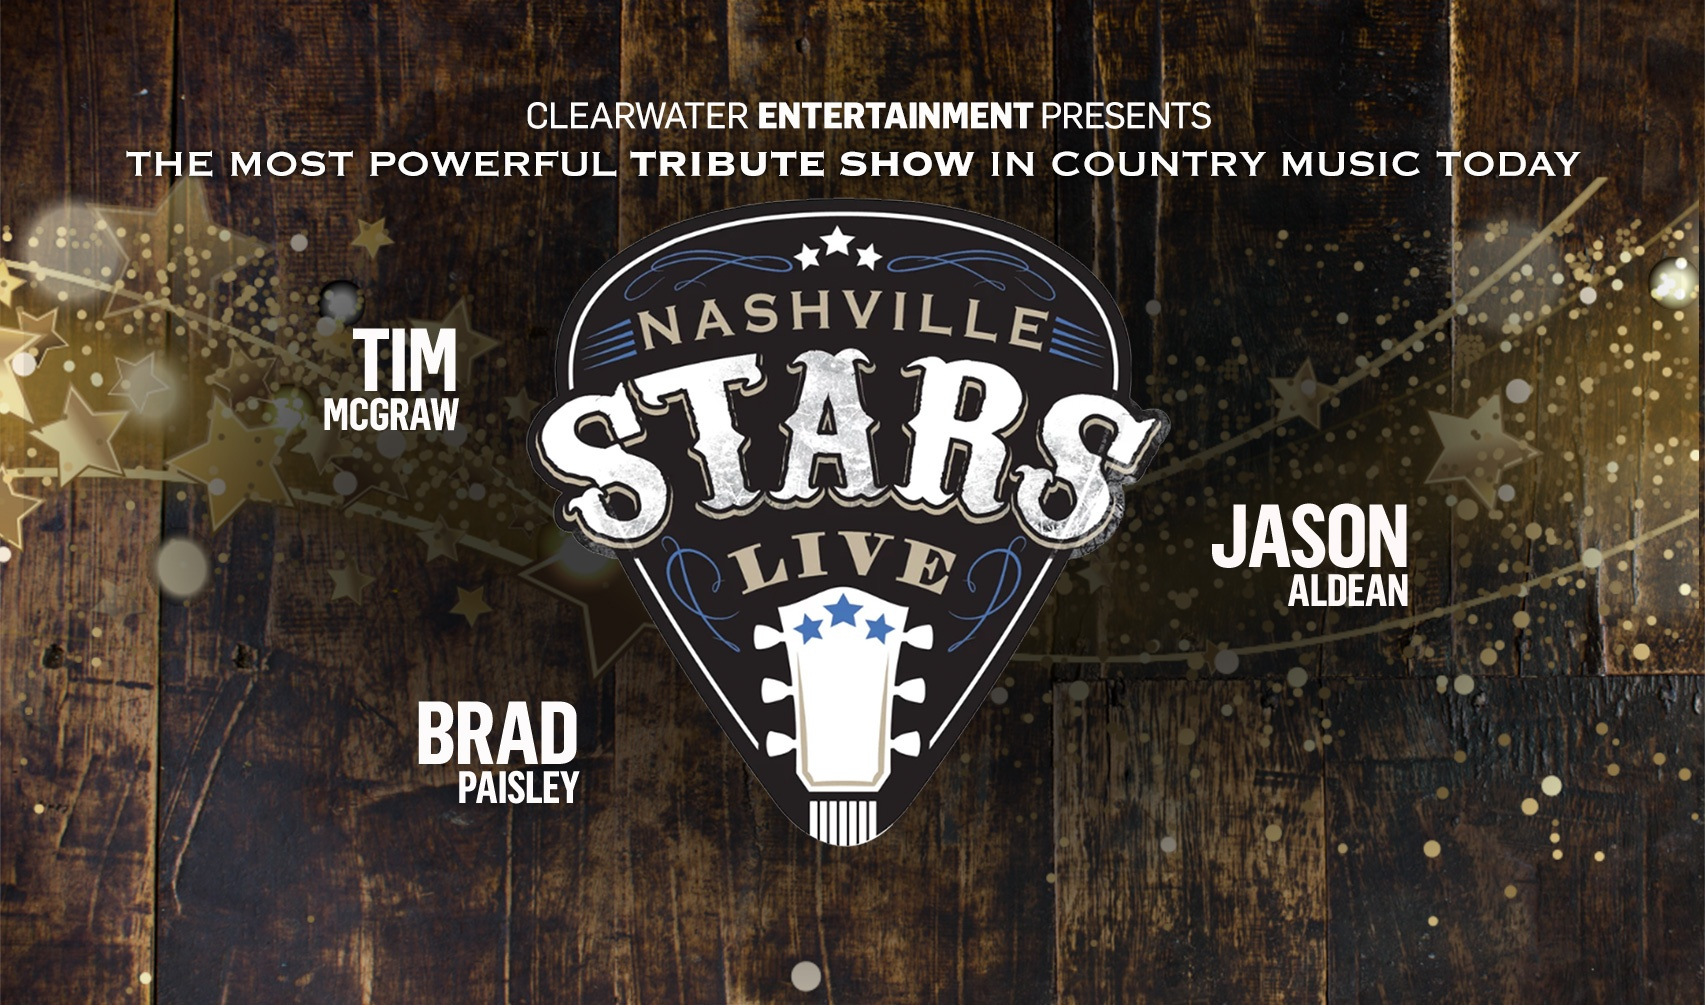 Nashville Stars Tribute